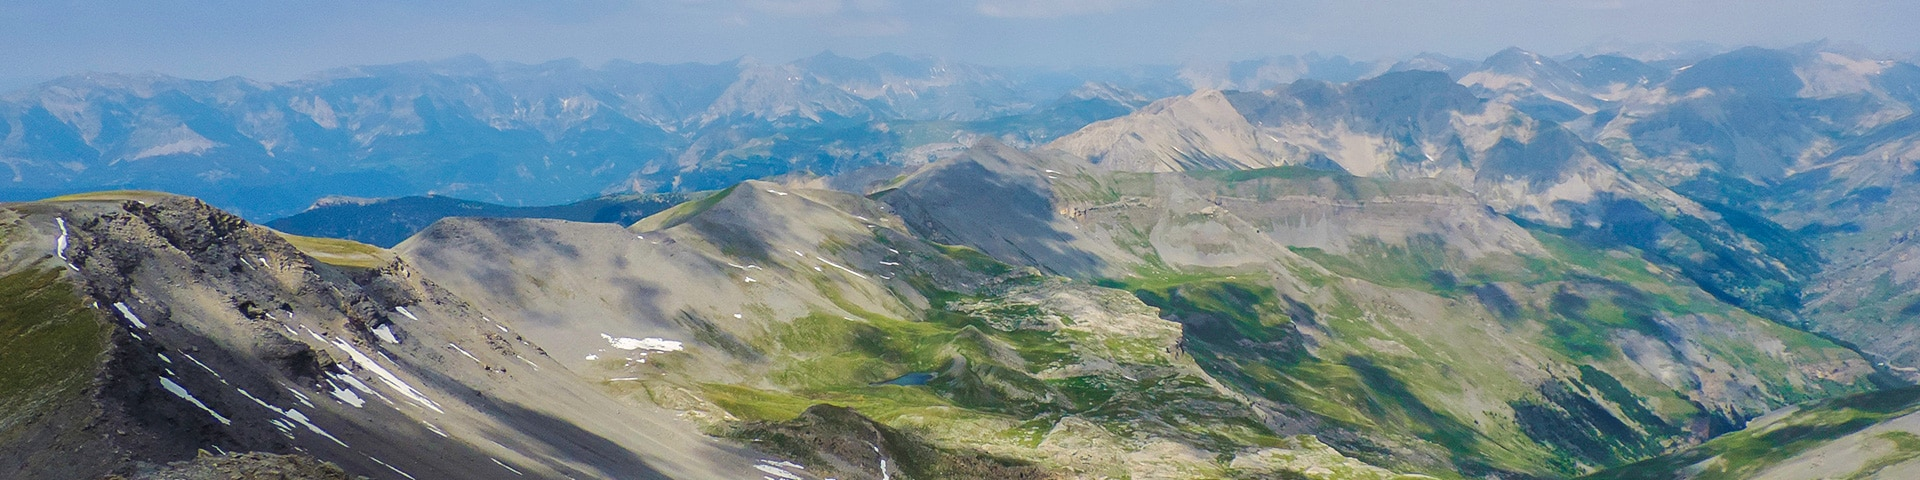 Panorama of the Mount Mounier hike in Mercantour National Park, France''